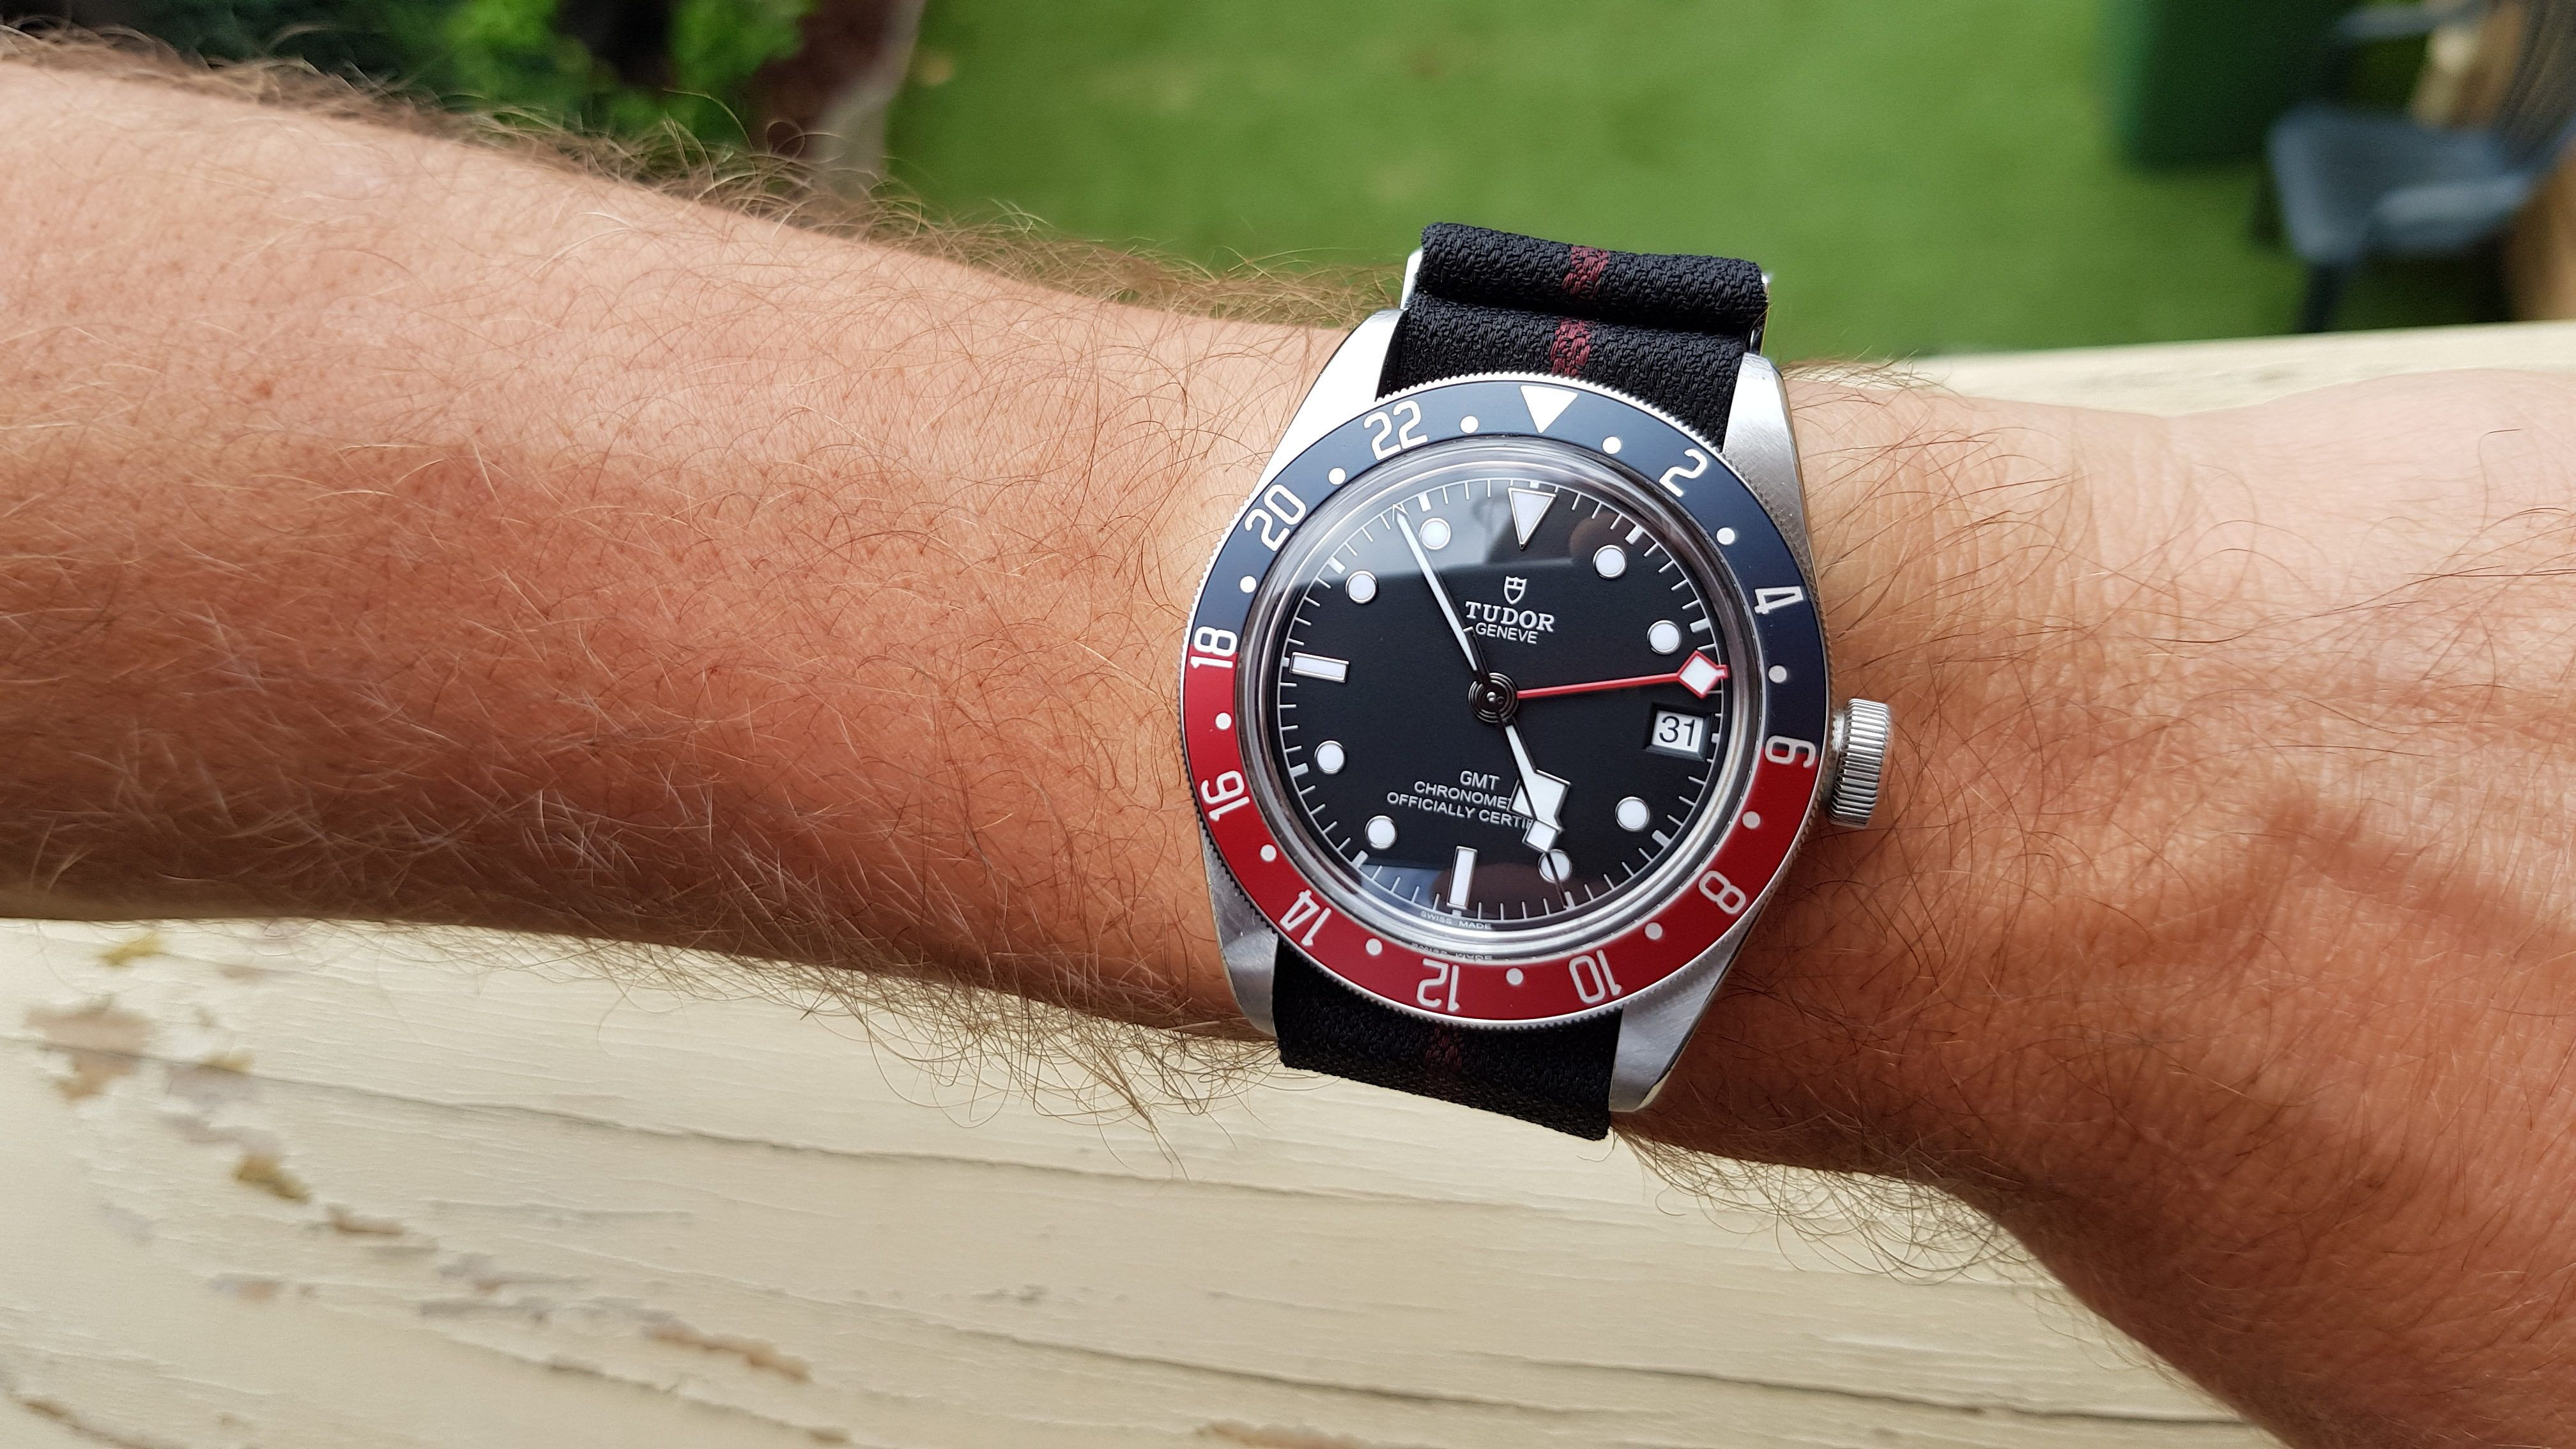 Weekend watch spotting with JR